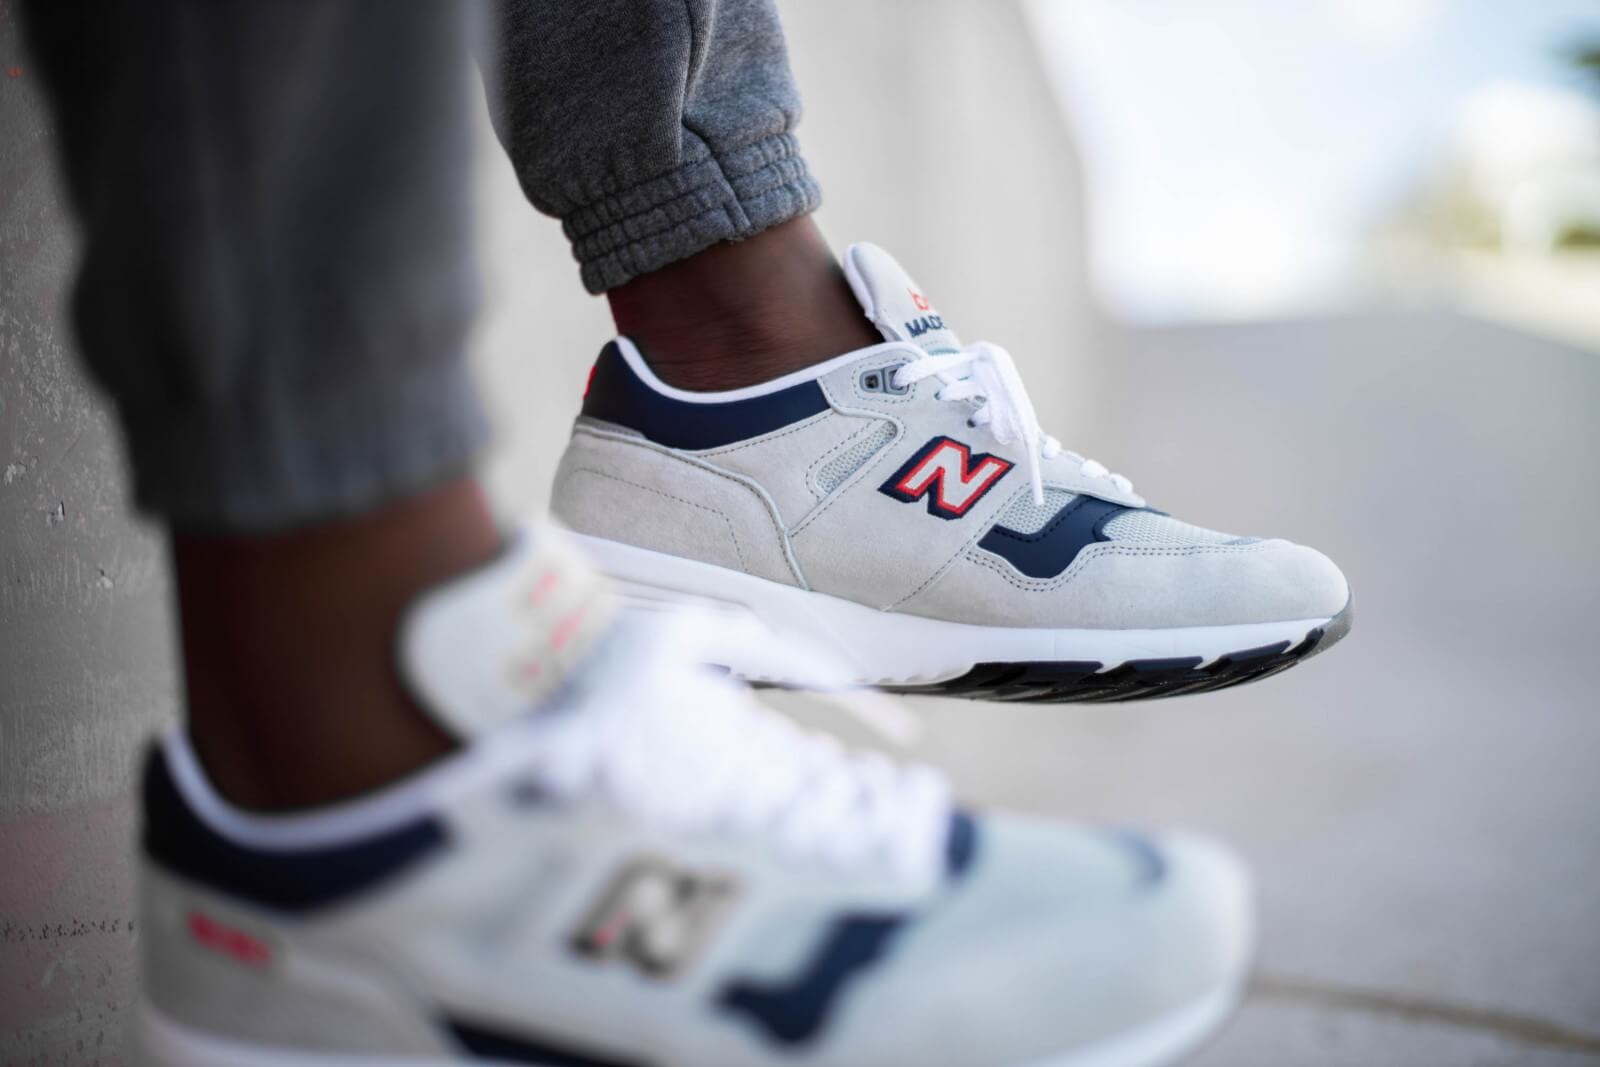 New Balance M1530WNR Grey/Navy-Red Made in England - 781081-60-3